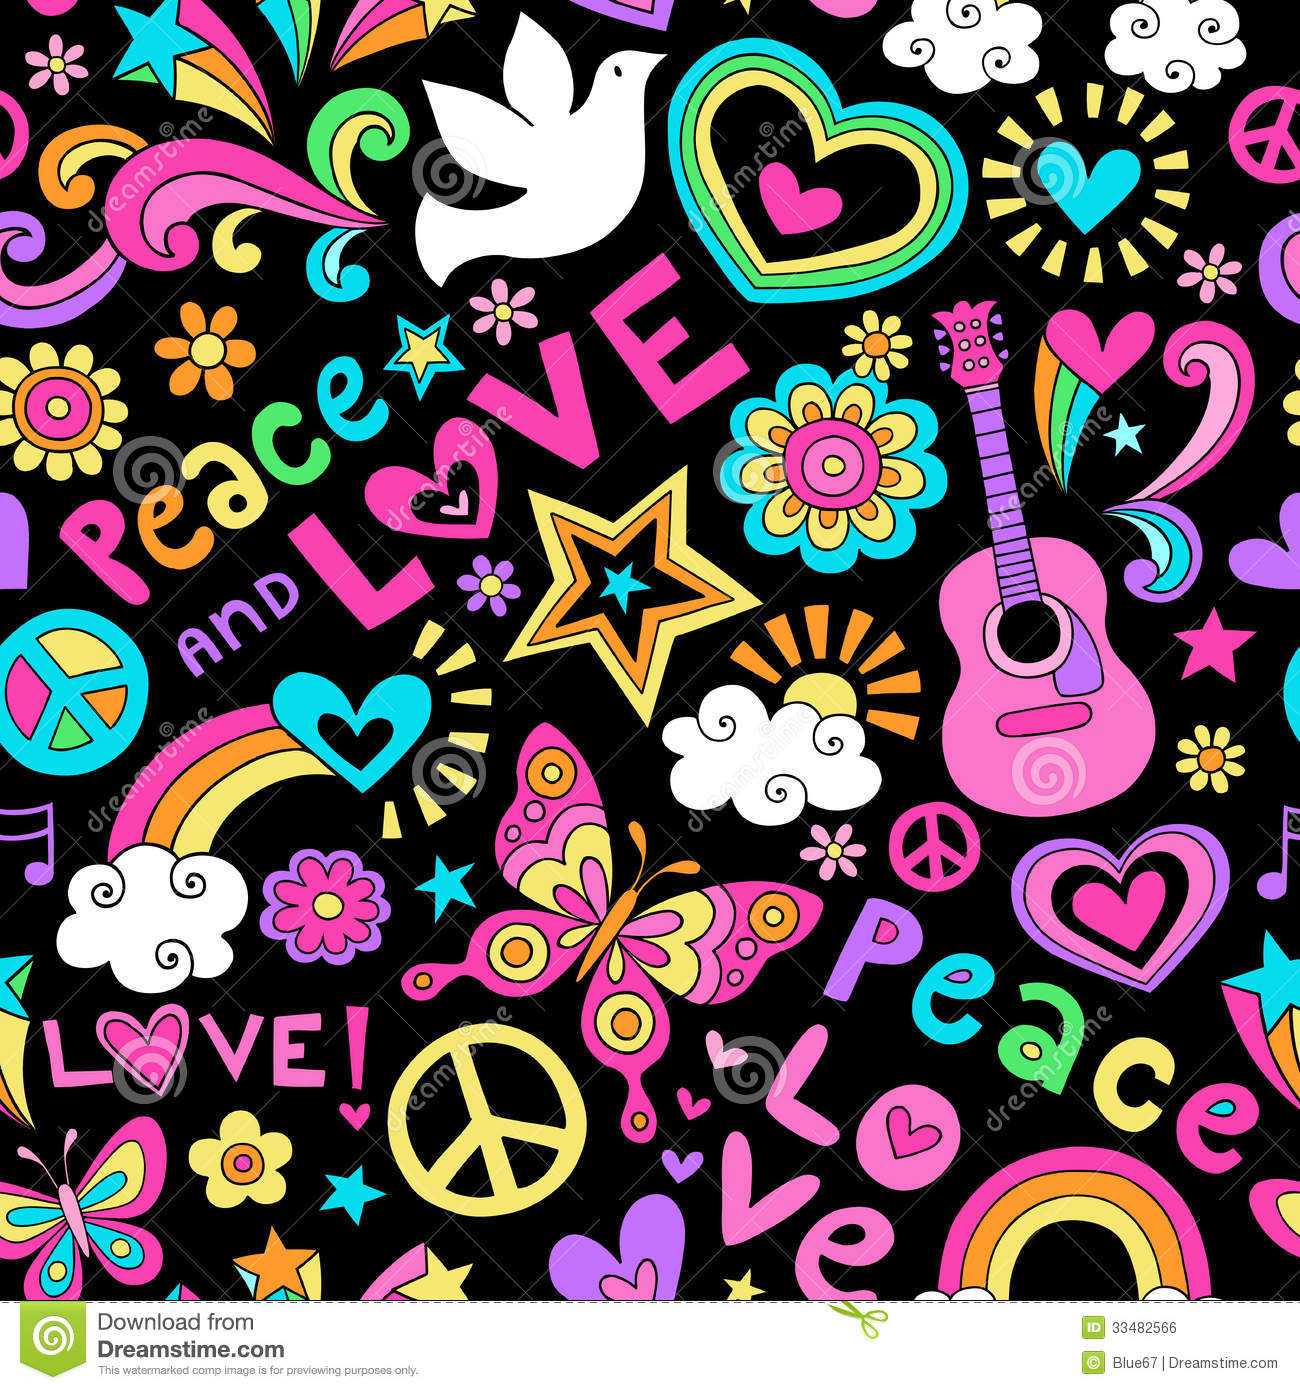 FunMozar Peace Backgrounds Wallpapers 1300x1390